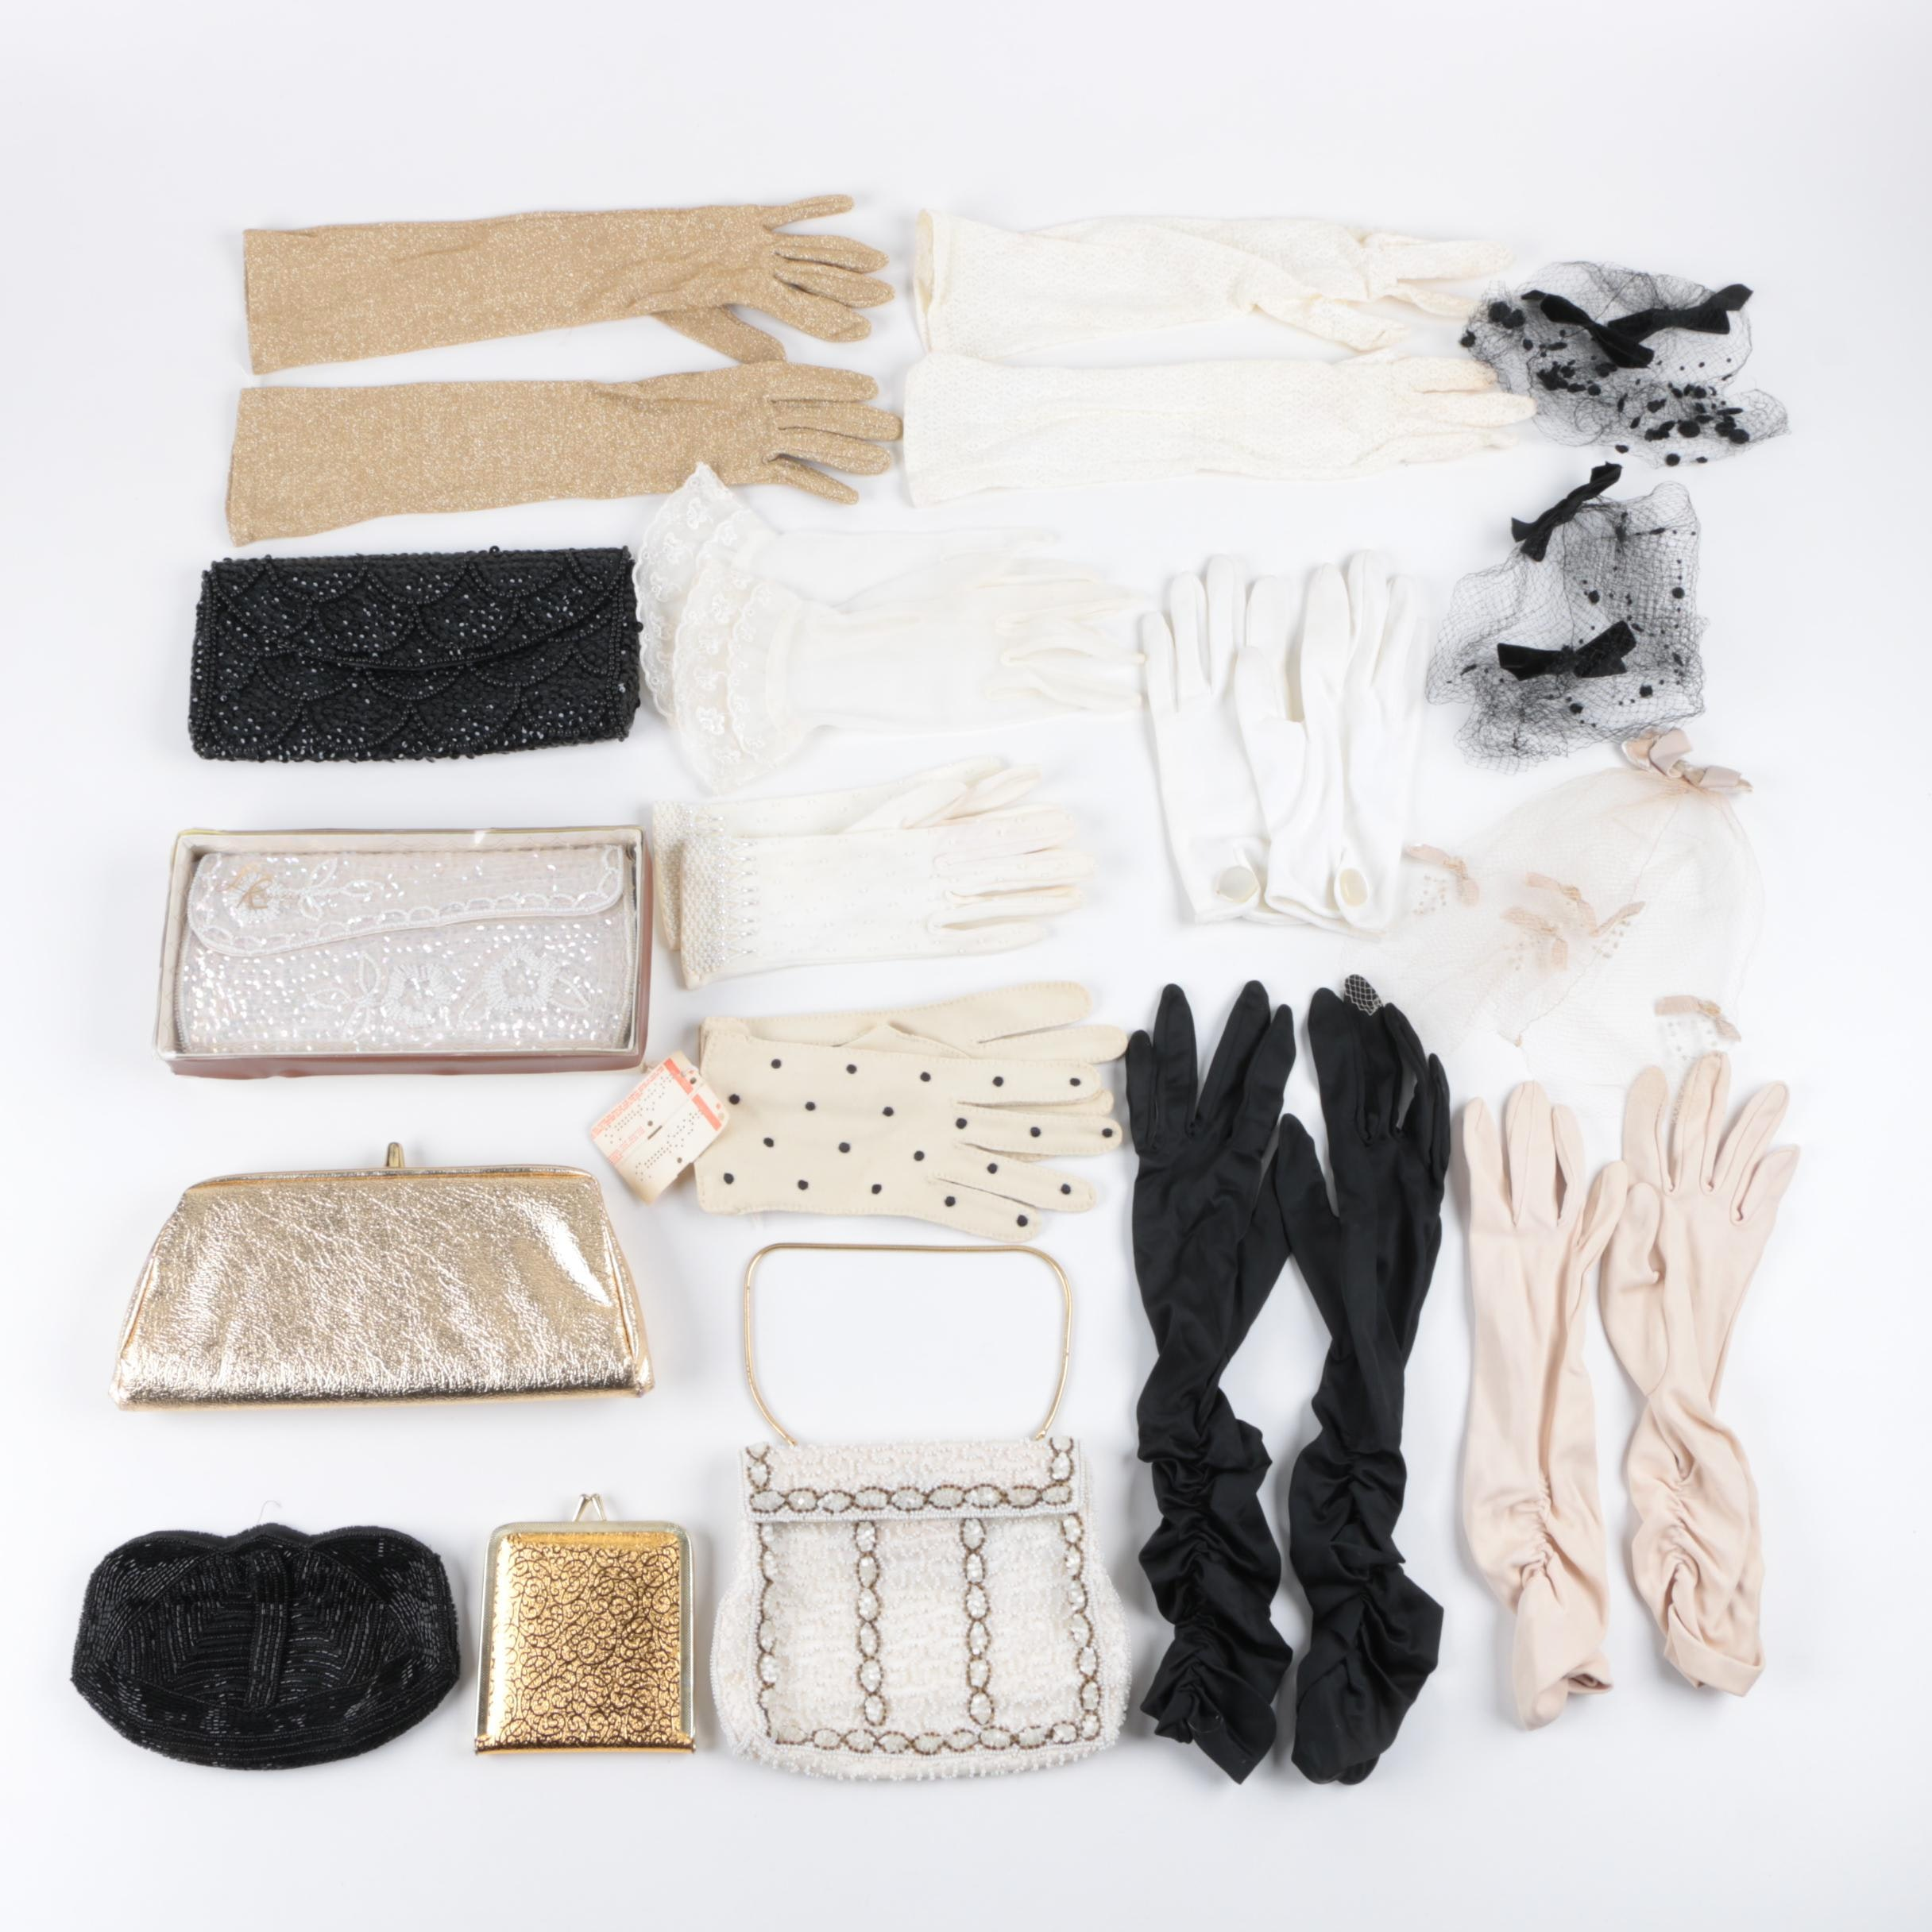 Women's Vintage Handbags, Gloves and Fashion Accessories